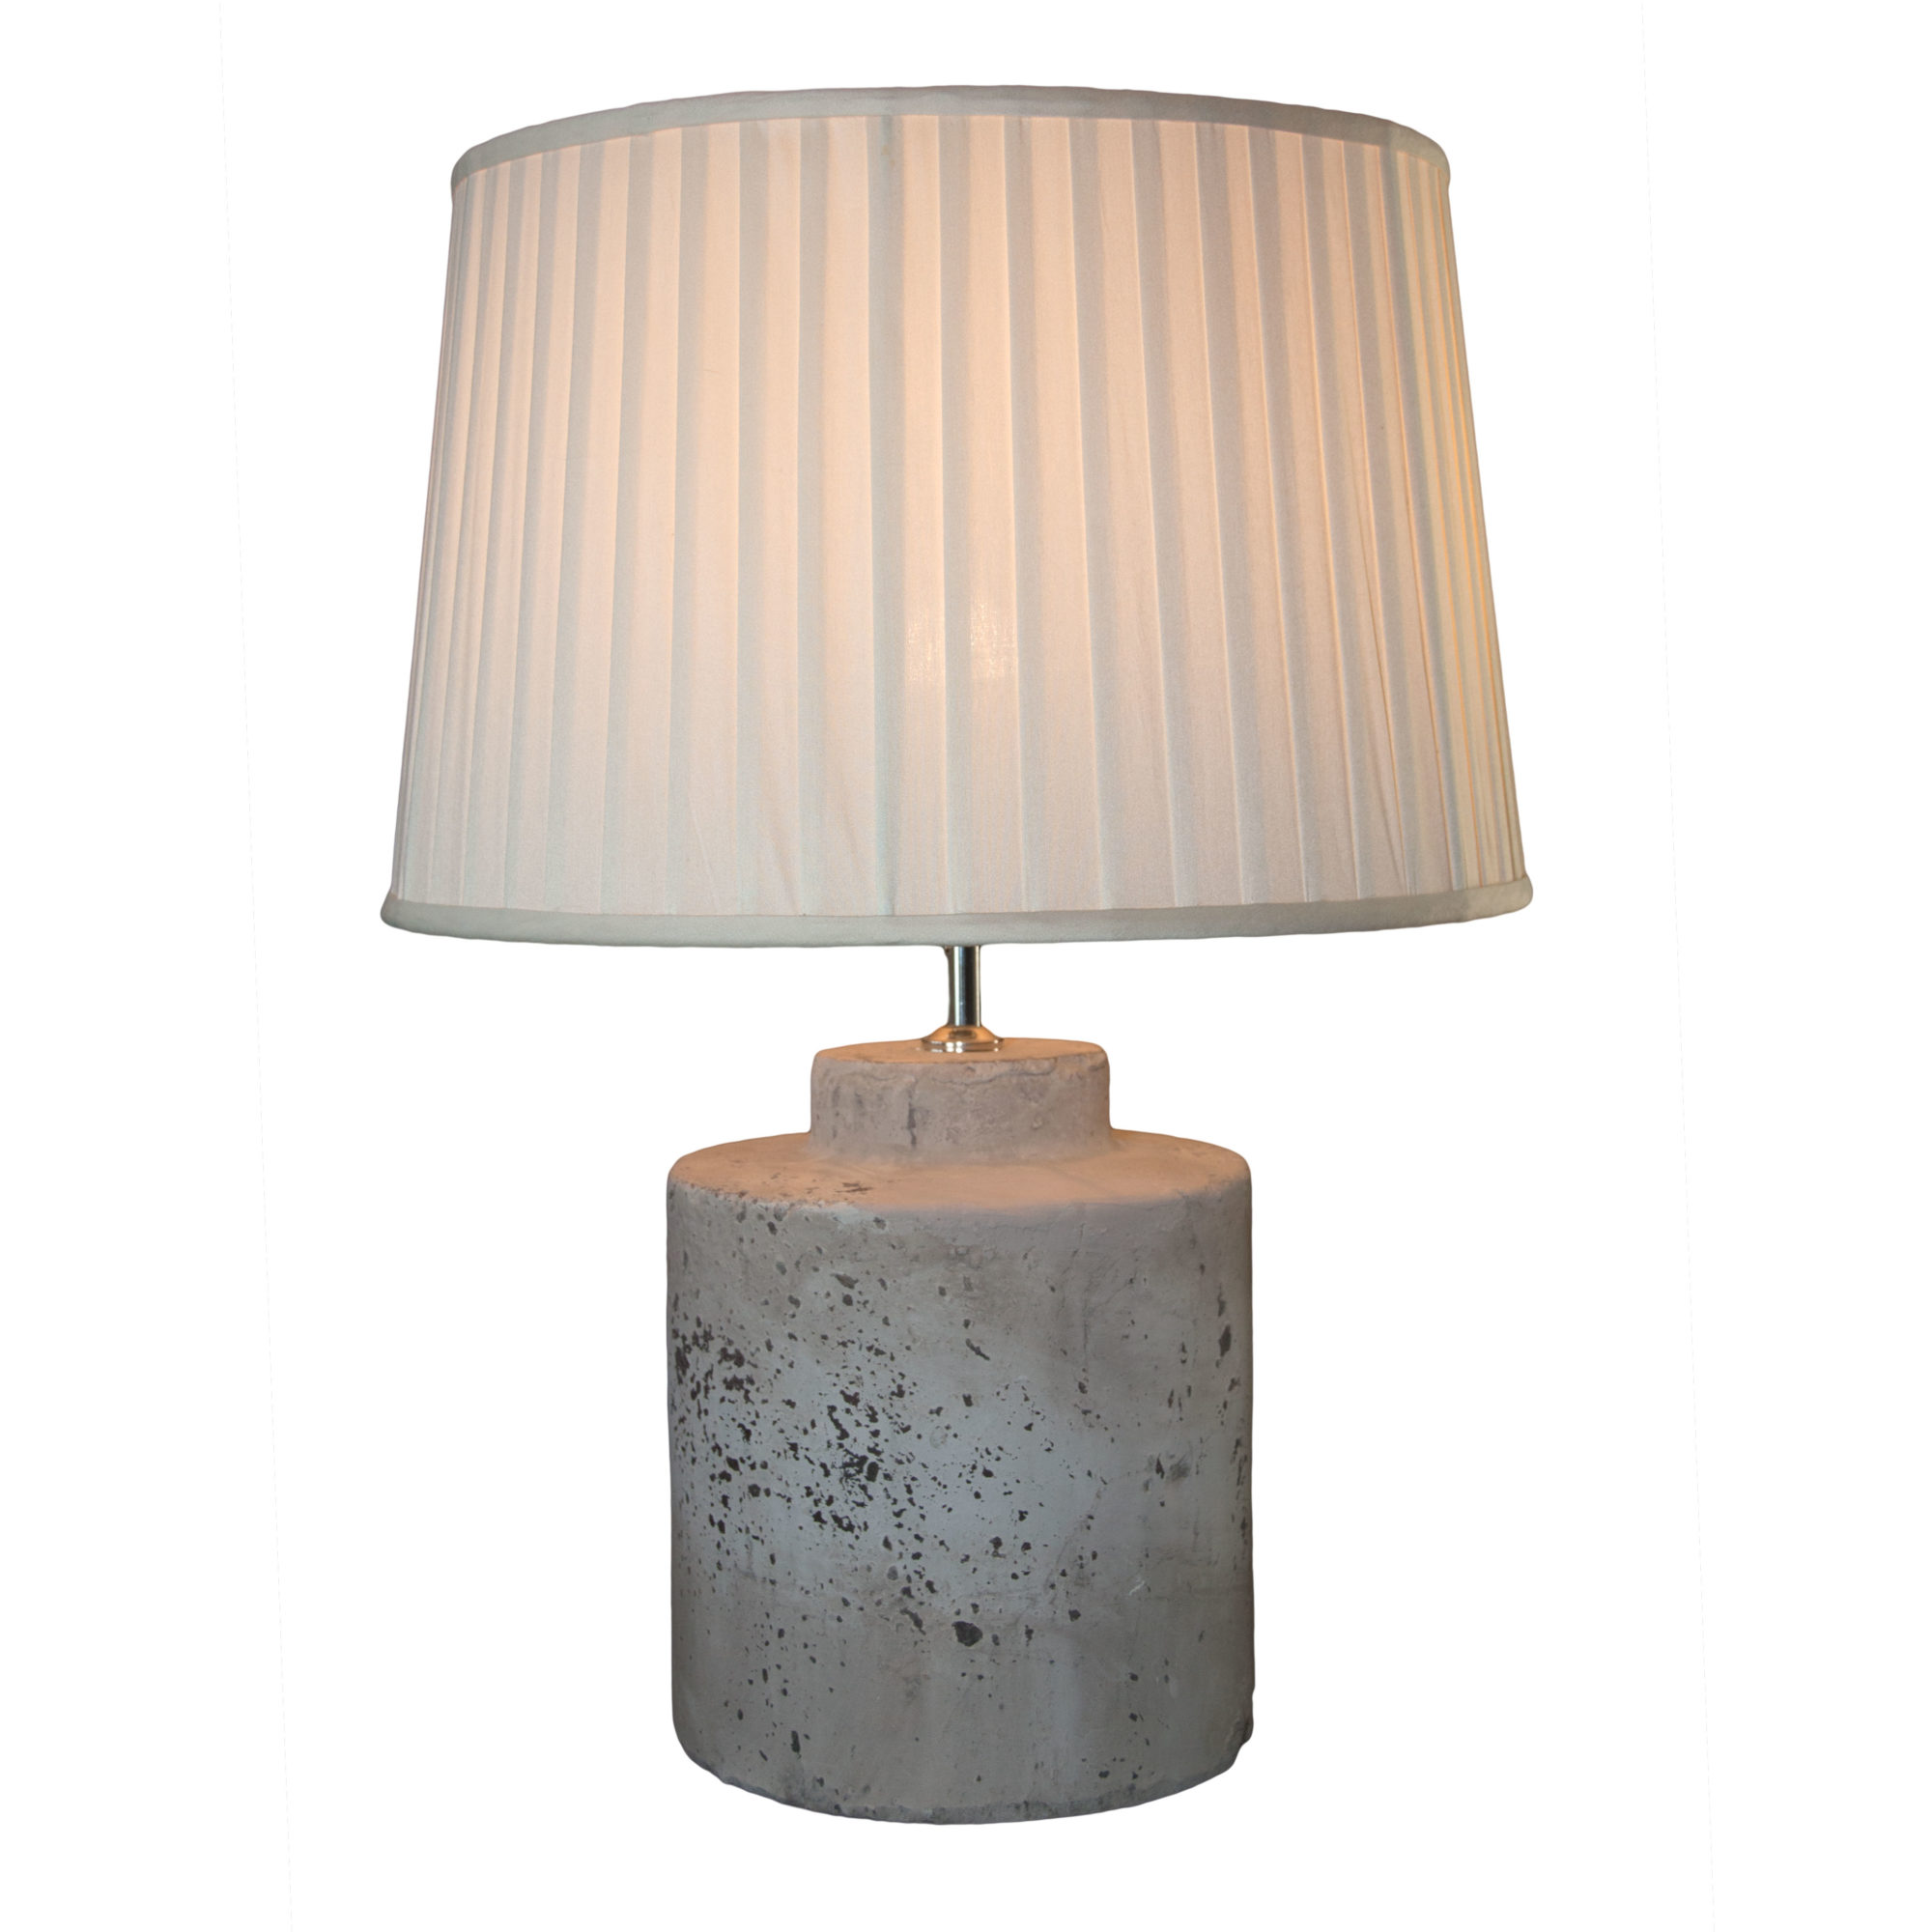 Stone Effect Drum Shaped Lamp Base